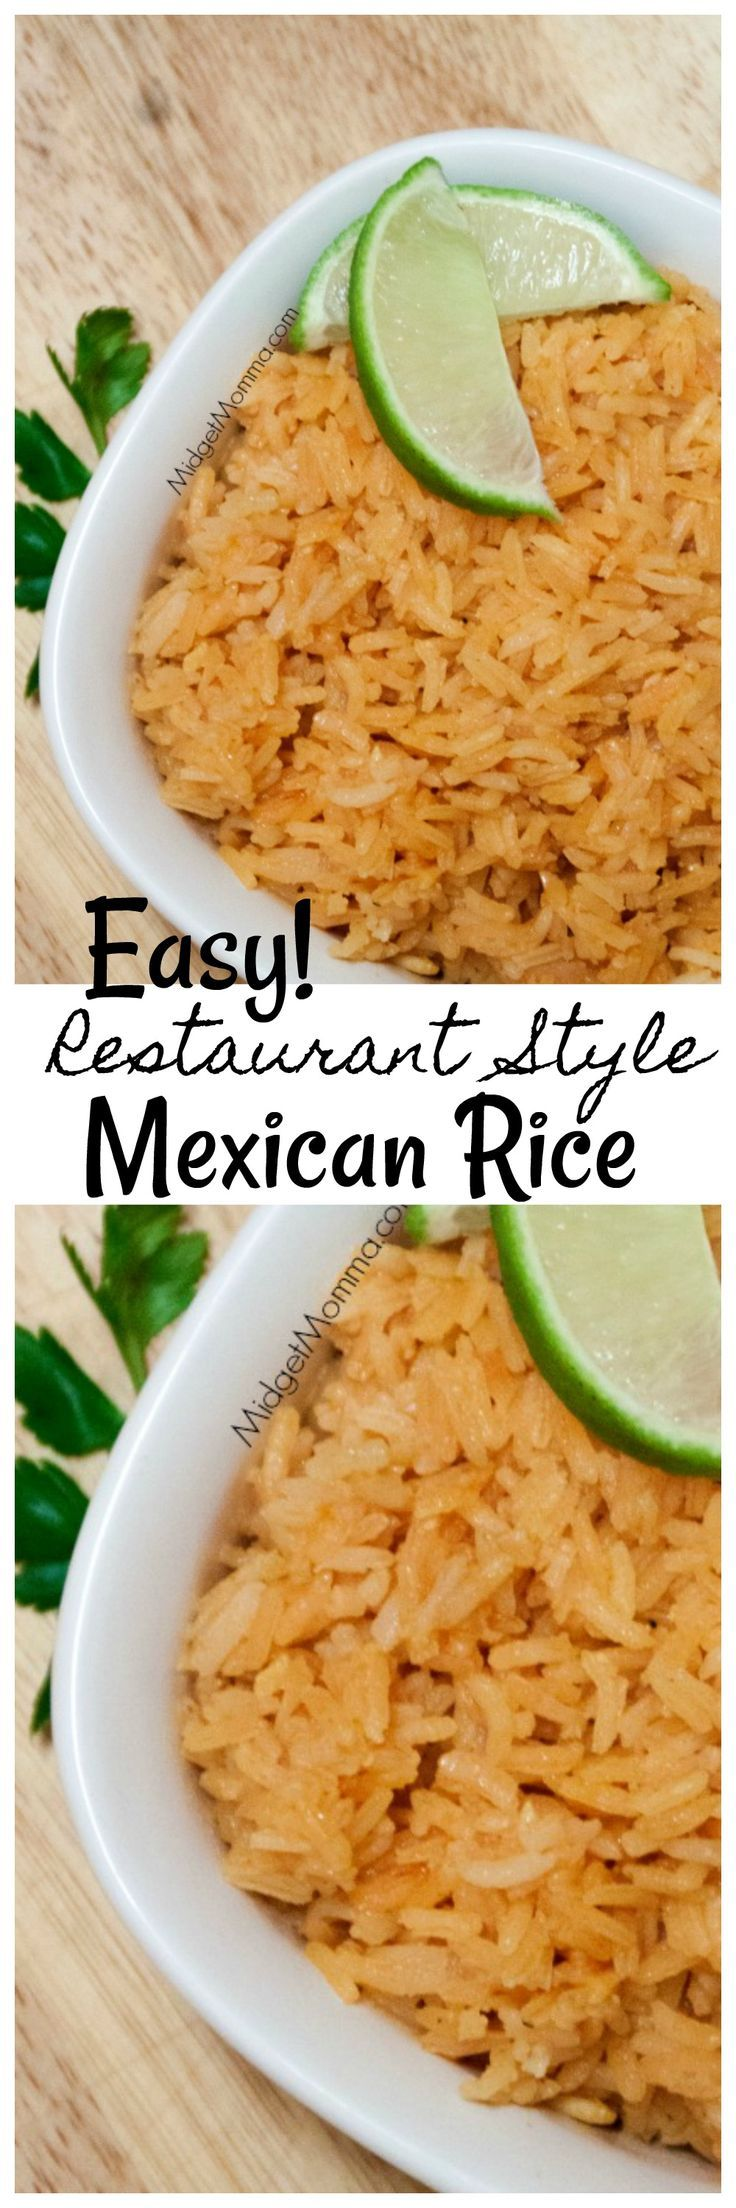 Restaurant Style Mexican rice so you can skip eating out and have a real mexican style meal at home! Plus one of the easiest mexican rice recipes ever!